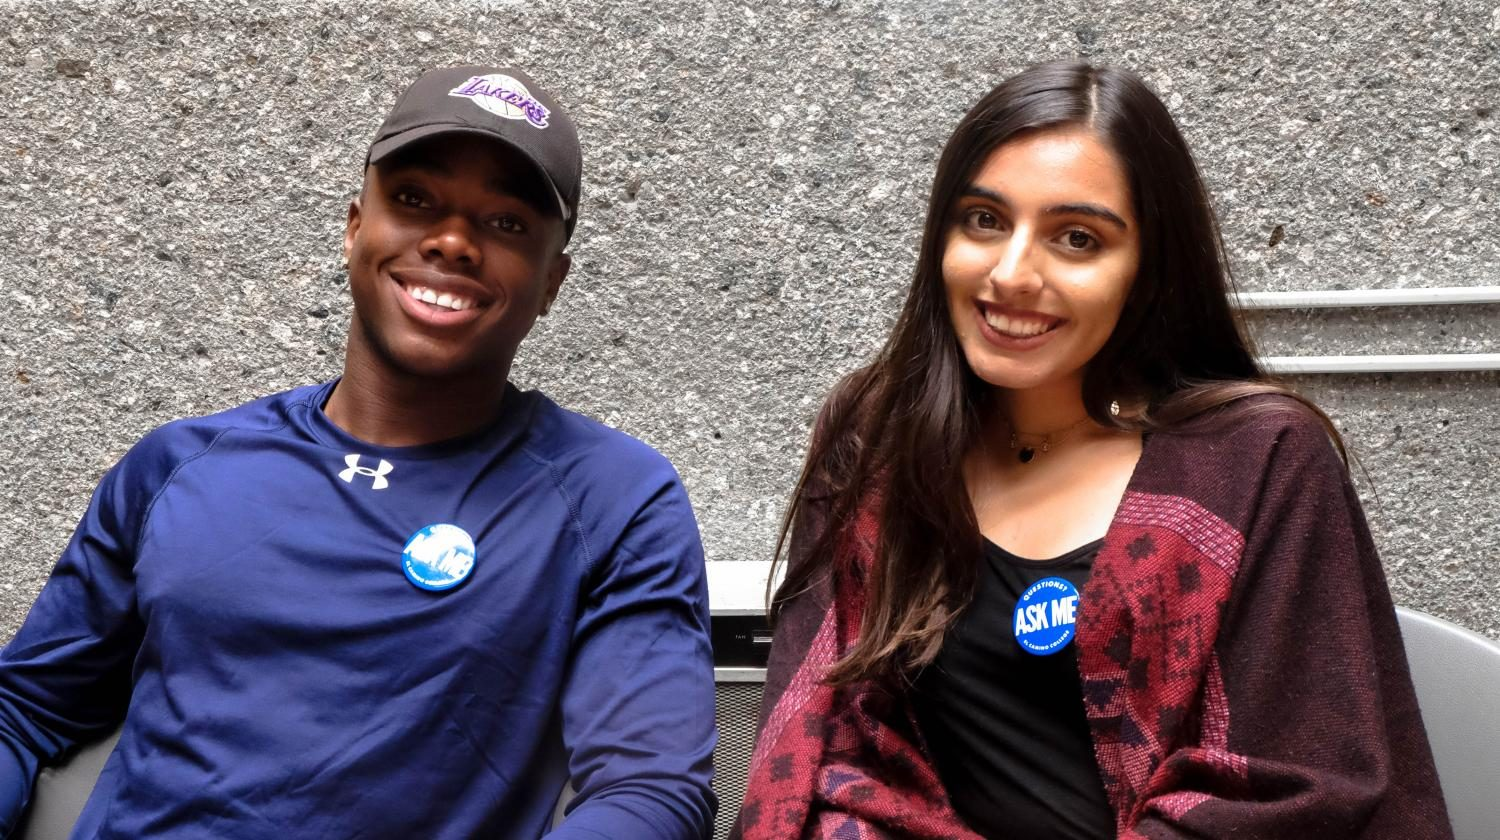 Student+ambassadors+Okwes+Nwaelleh+and+Anam+Khan+wearing+their+%22Ask+Me%22+buttons+on+the+second+week+of+school.+Photo+credit%3A+Emma+Dimaggio